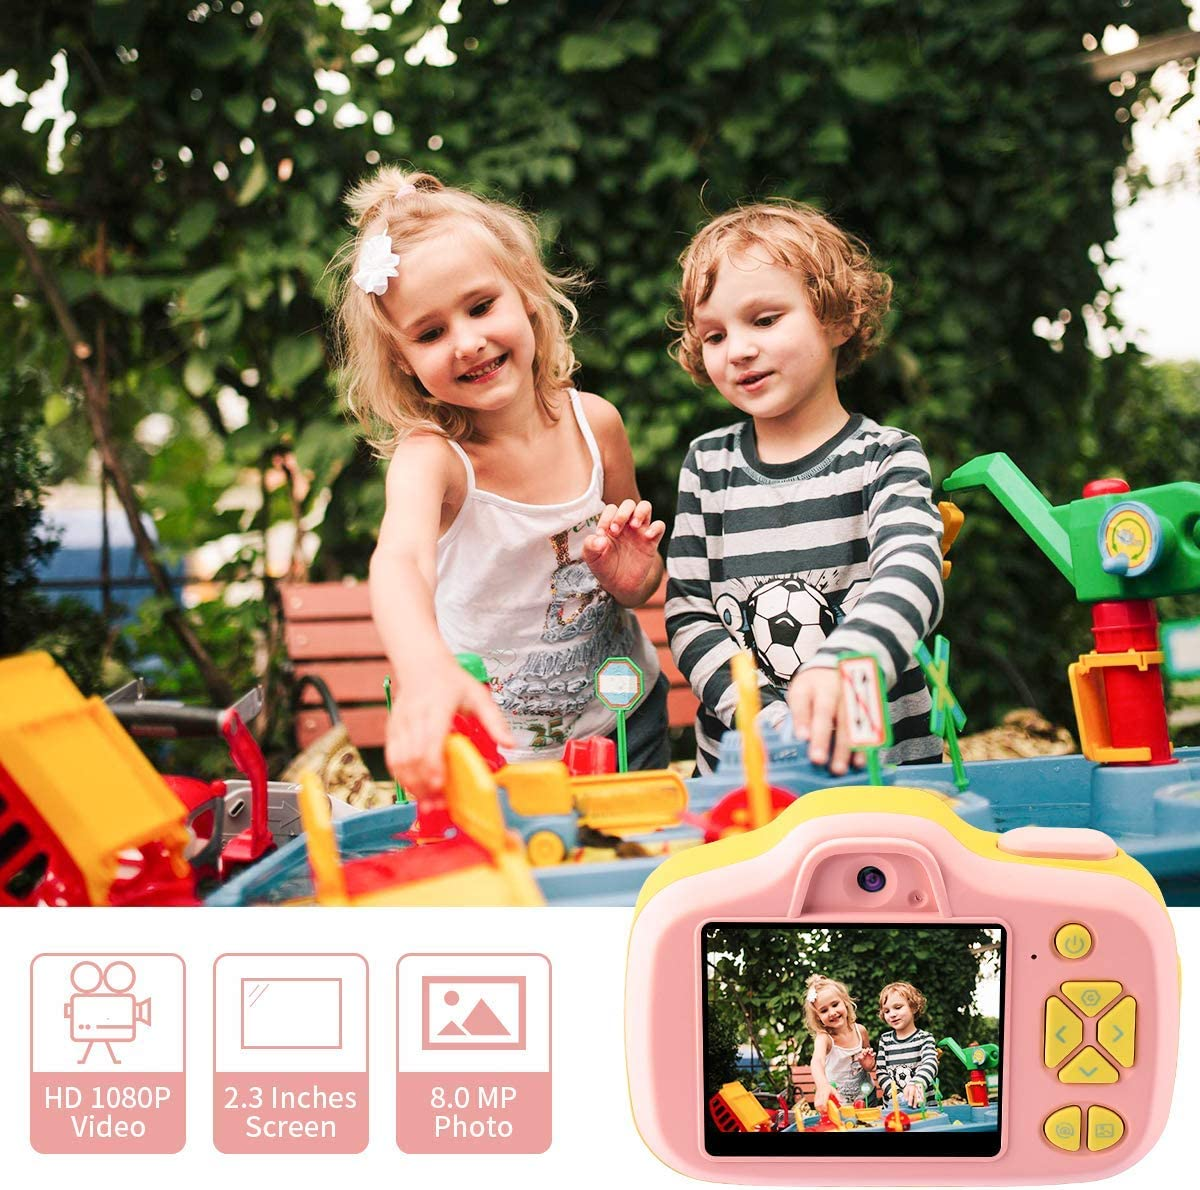 Children Toddler Mini Camera for Birthday Party Outdoor Gifts 2.3 Large Screen Selfie Video Digital Dual Cameras Kids Camera Gifts for Girls 4 5 6 7 8 Years Old